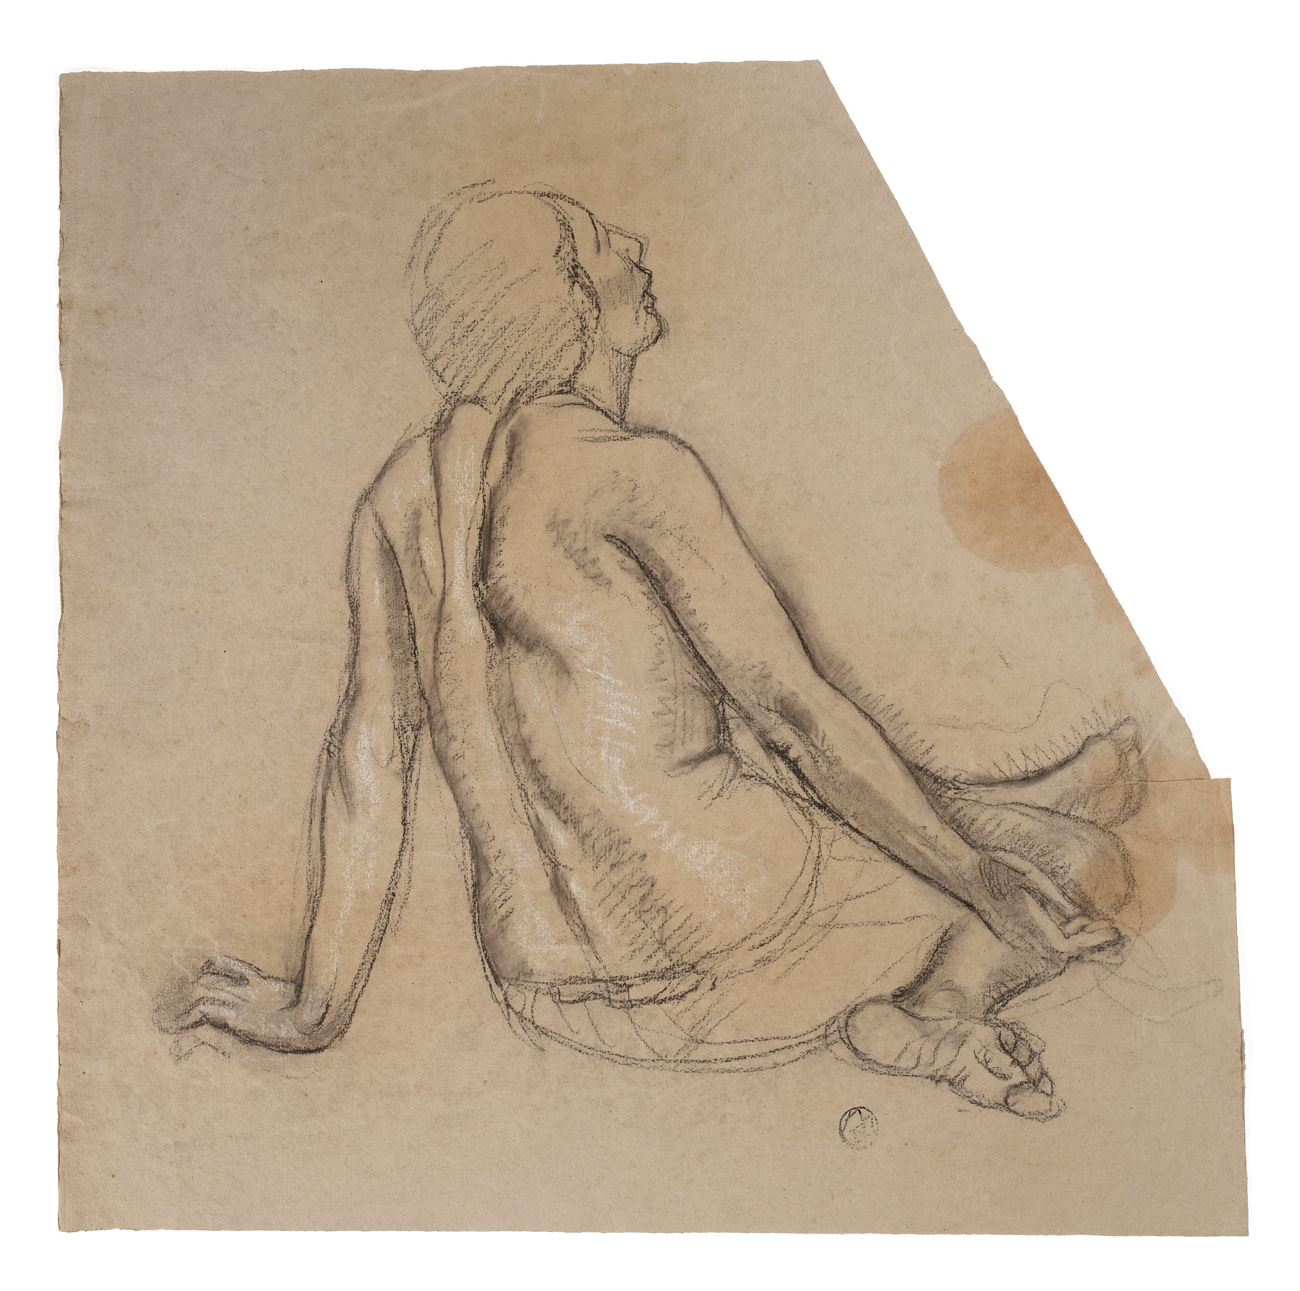 charcoal drawing of a shirtless person sitting on the ground, as viewed from behind.